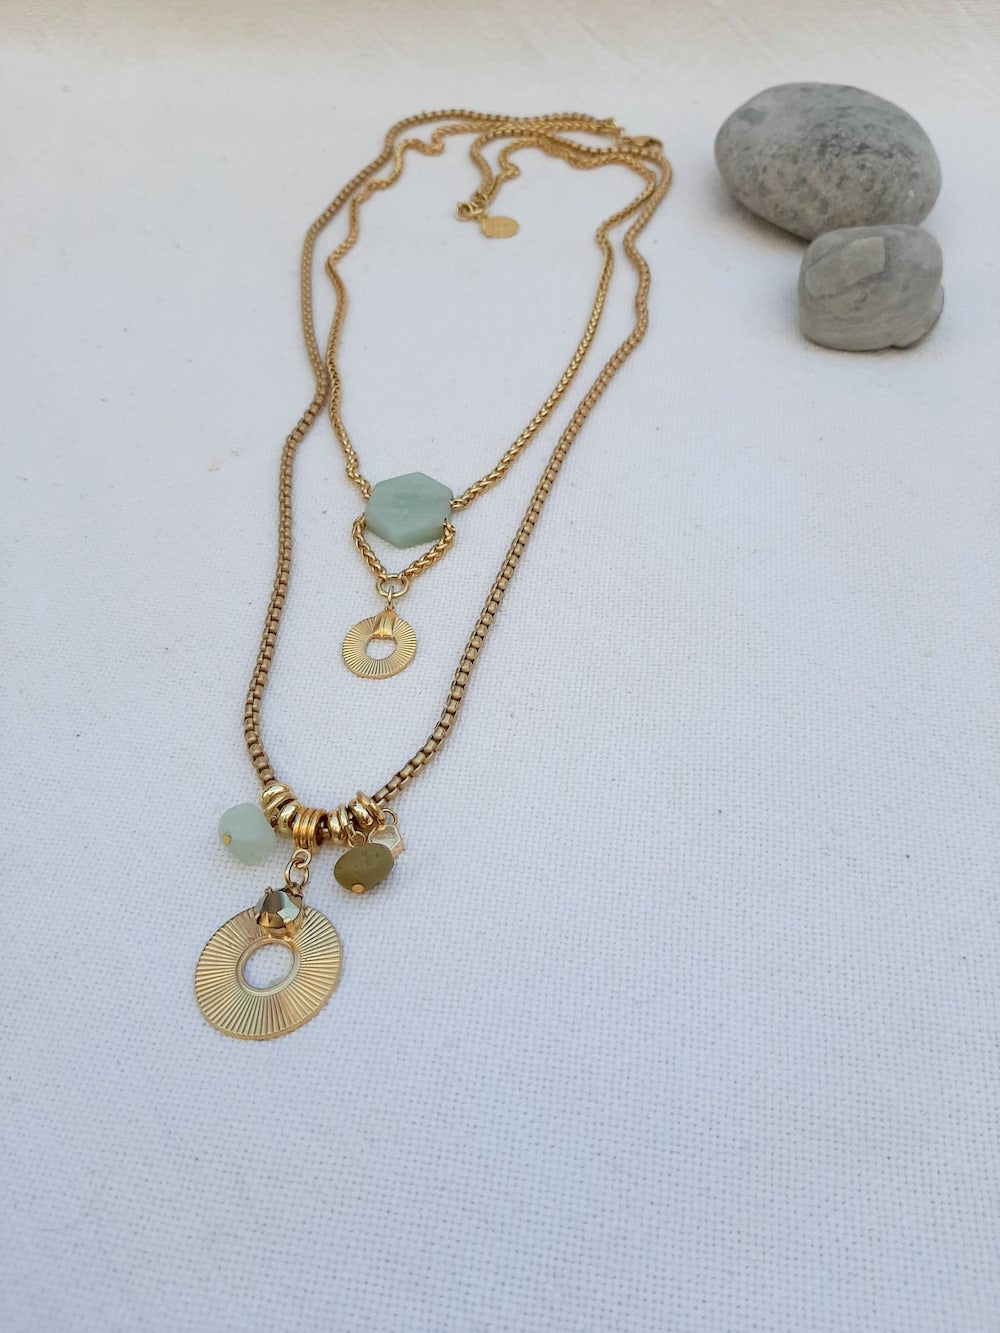 Two layered long gold chain necklace with gold disc & aqua stone drop pendant and charms